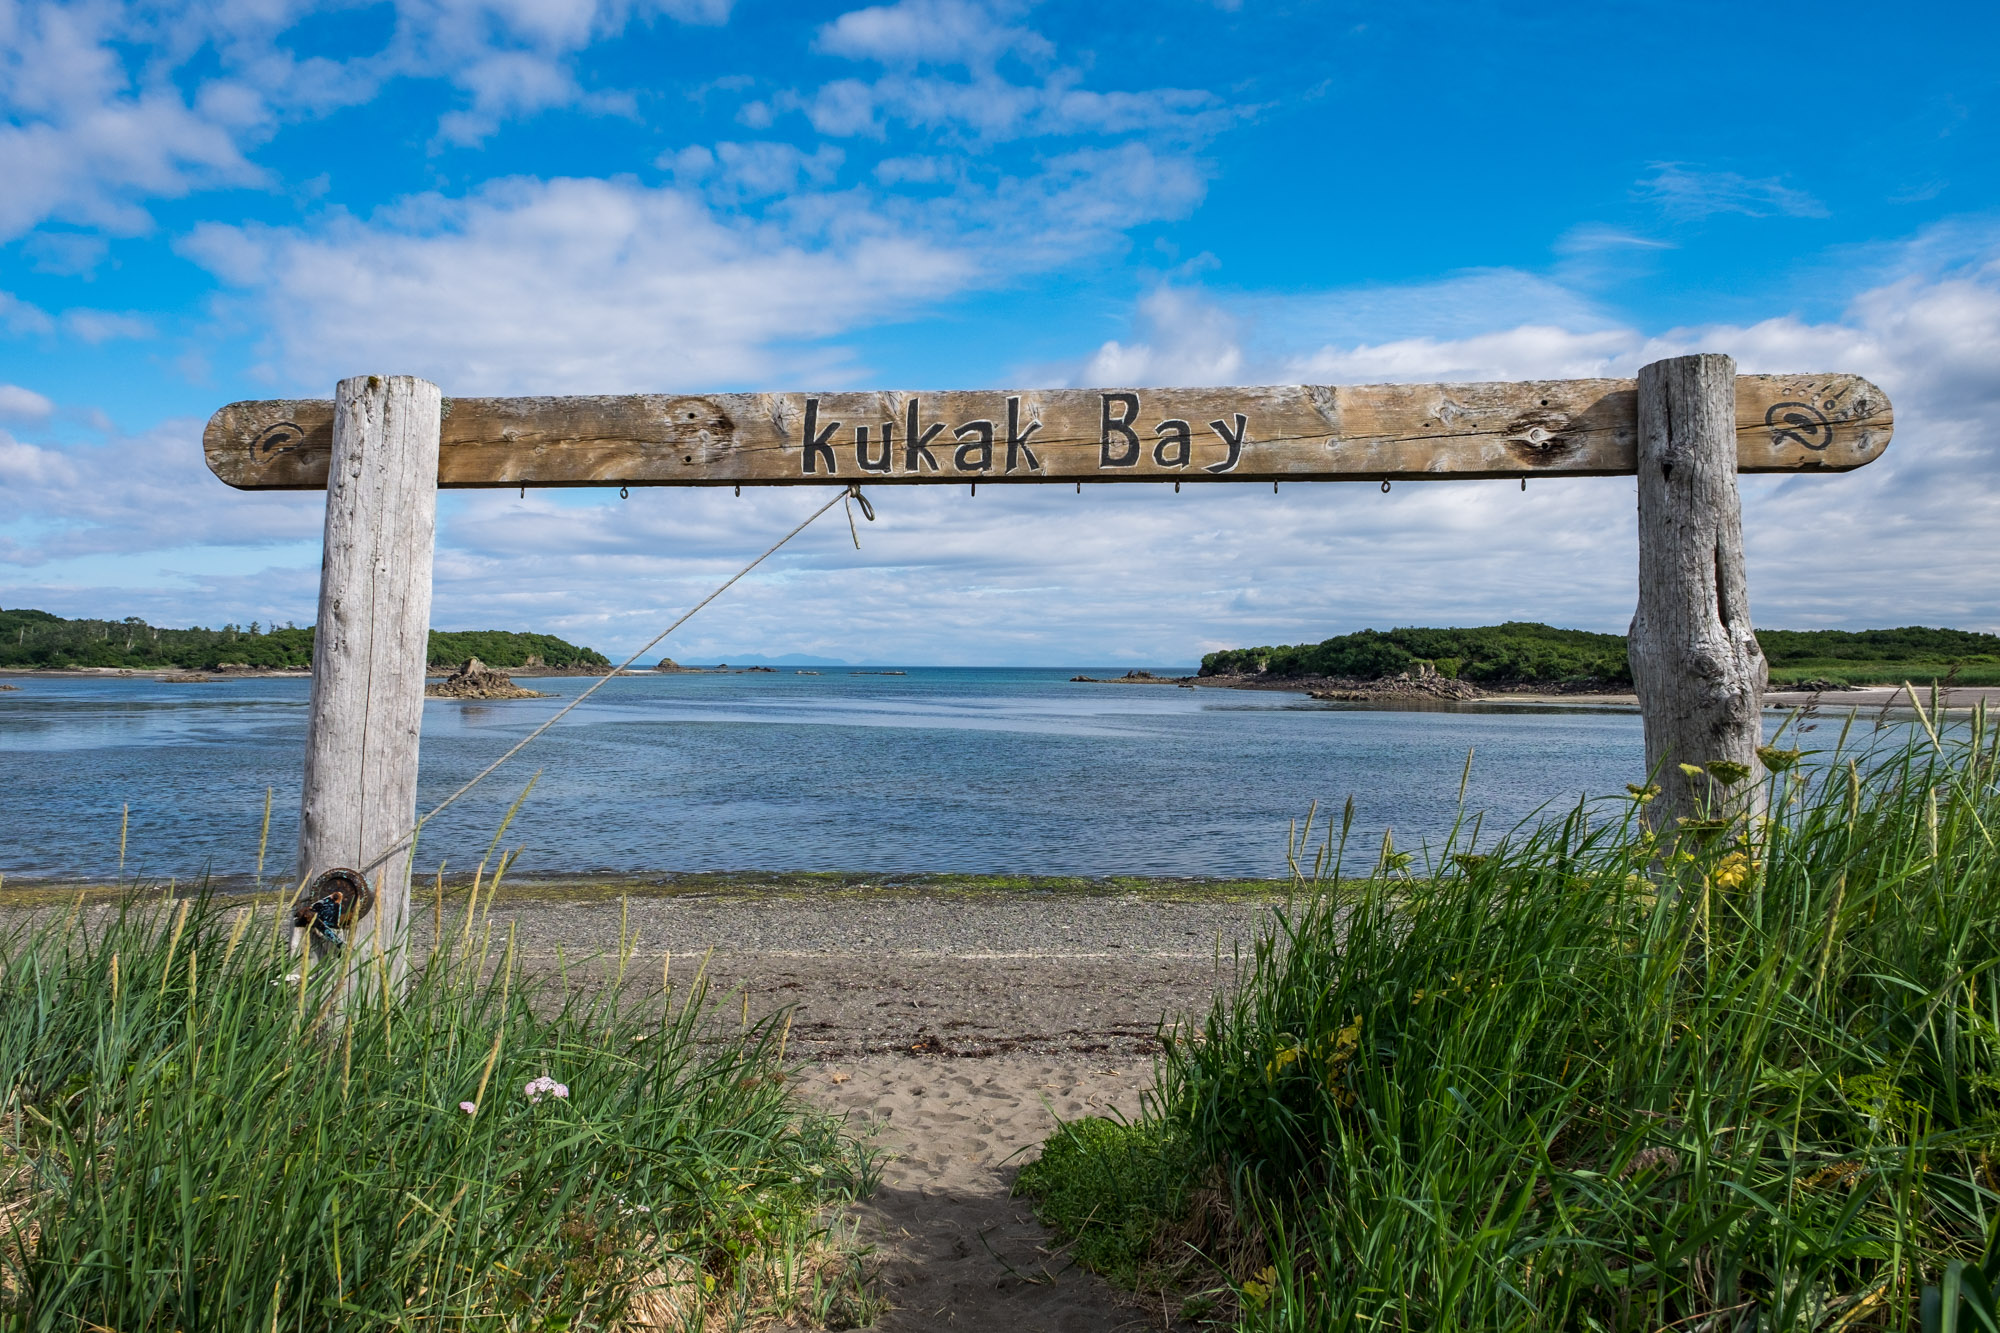 The Katmai Wilderness Lodge is situated on the Kukak Bay. It is a beautiful spot!